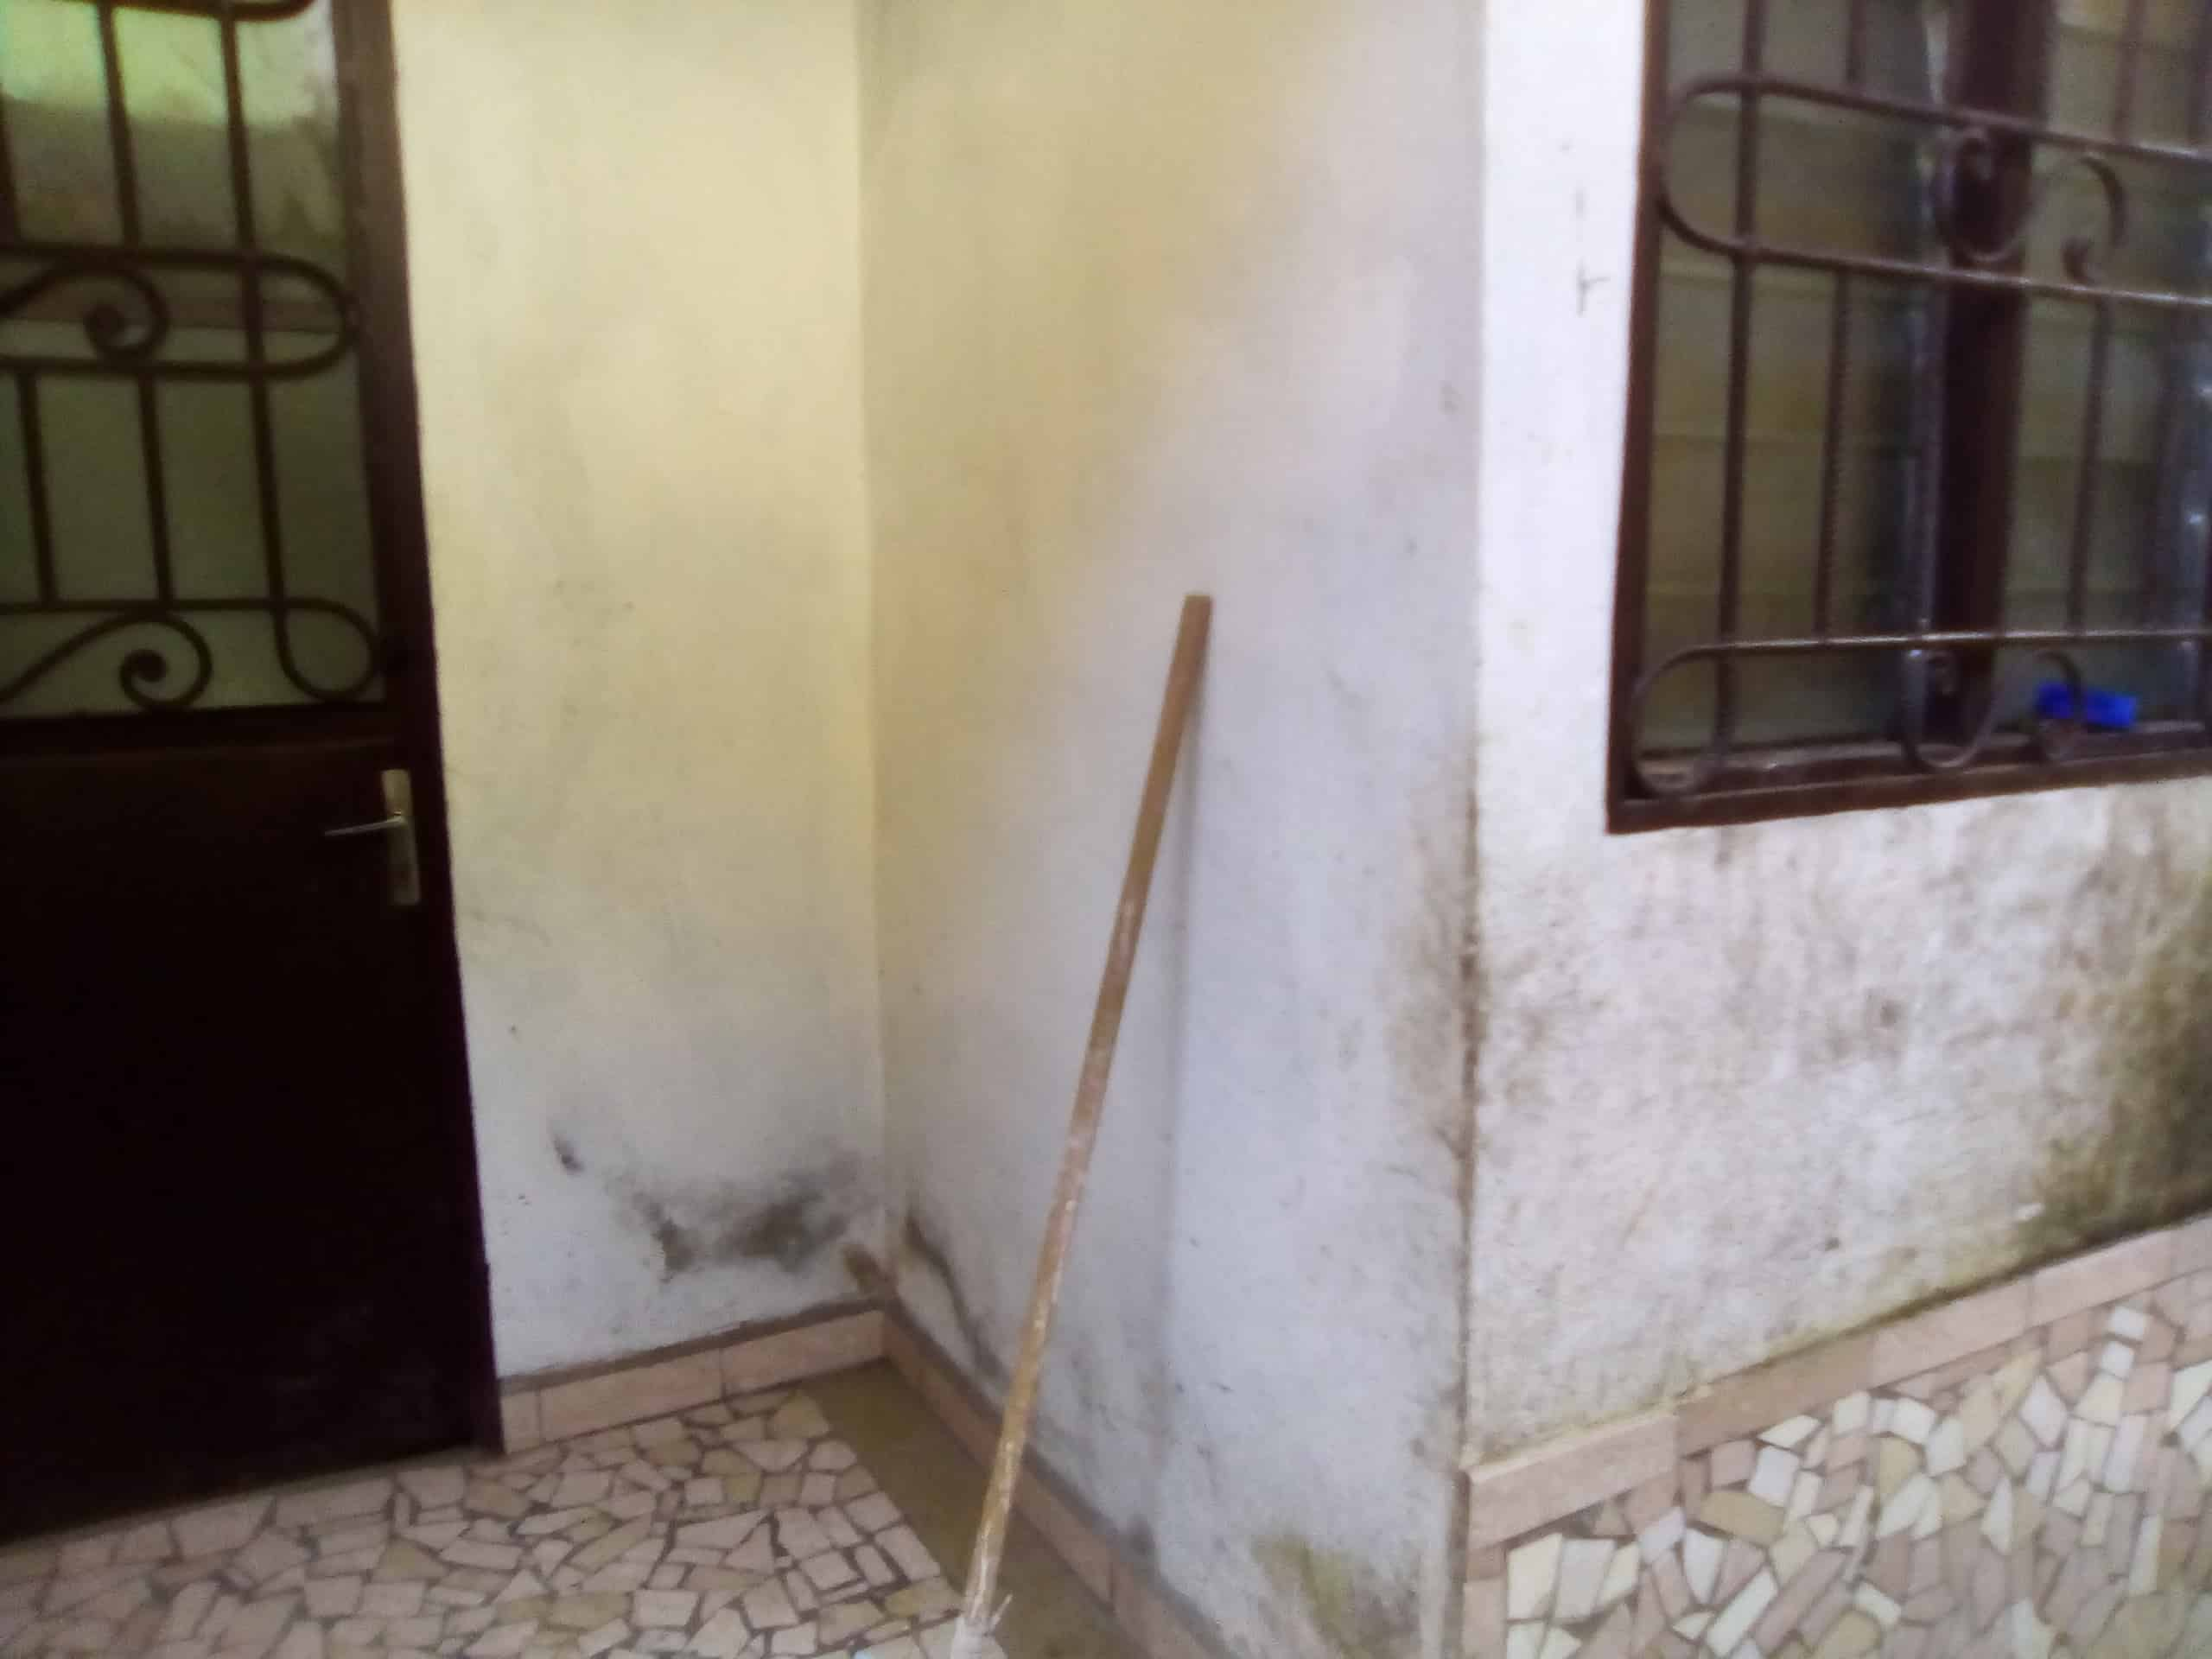 Apartment to rent - Douala, Kotto, fin goudron - 1 living room(s), 1 bedroom(s), 1 bathroom(s) - 40 000 FCFA / month